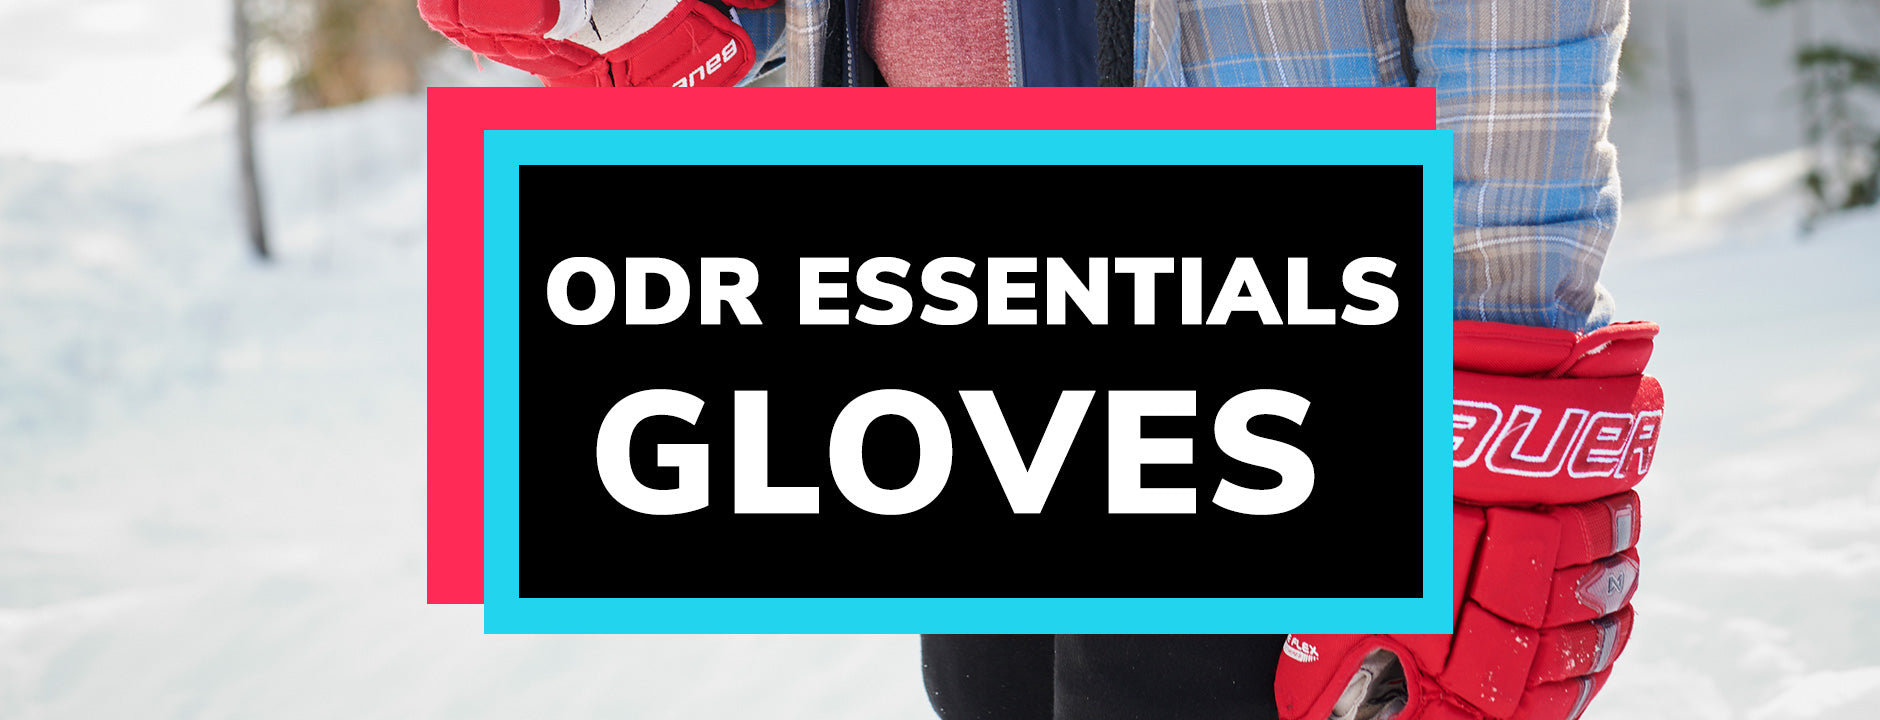 ODR Essentials - Hockey Gloves